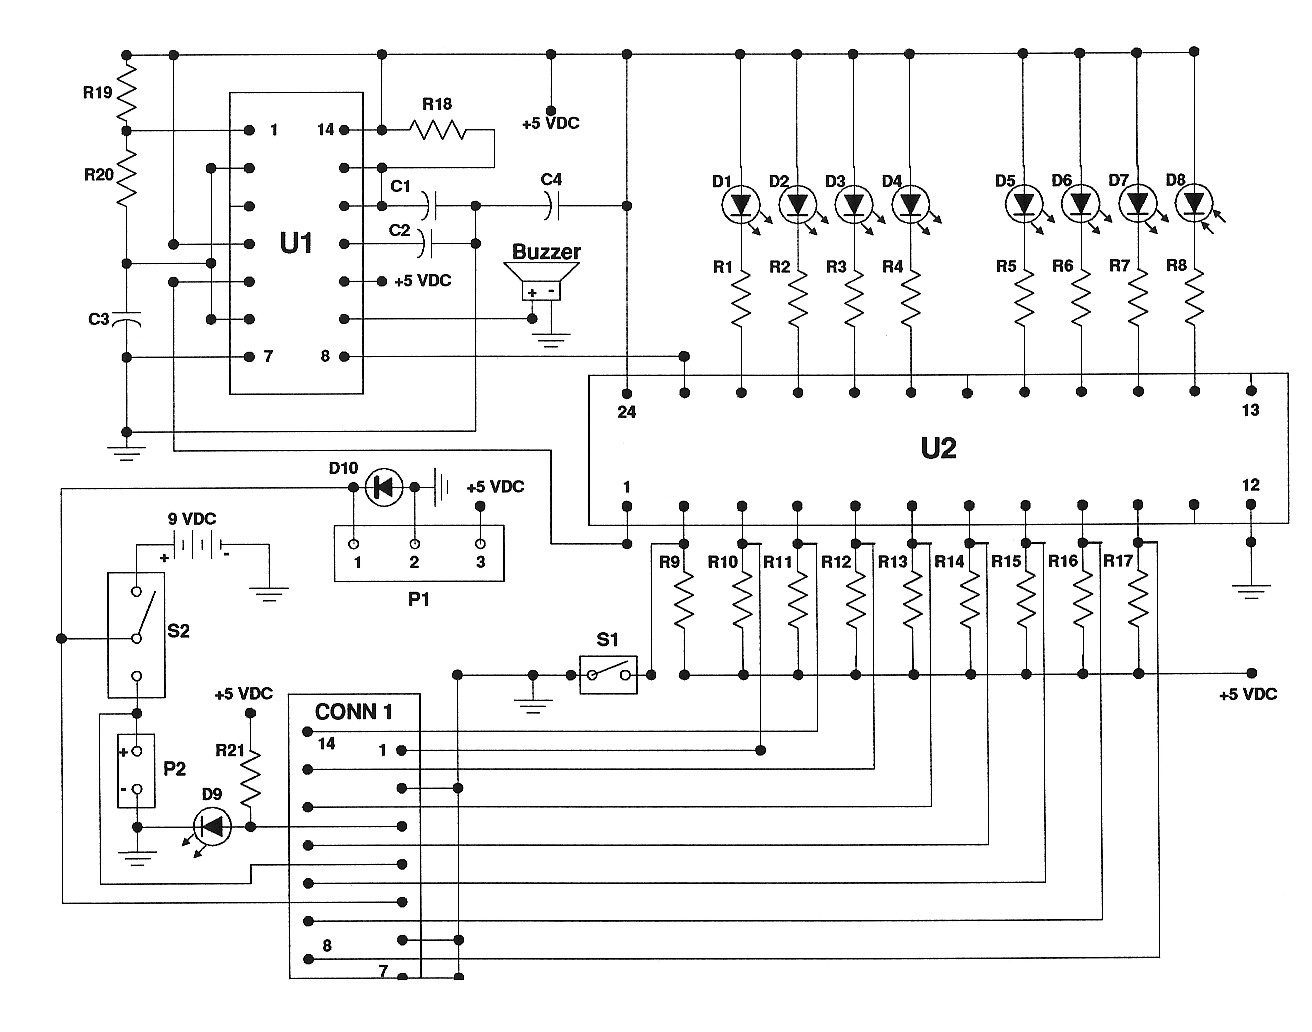 Beeper Buzzer Circuit Page 2 Audio Circuits Piezo Building A Competition Set Described The Construction Of Contest Additional Reference Material And Parts Are Available As